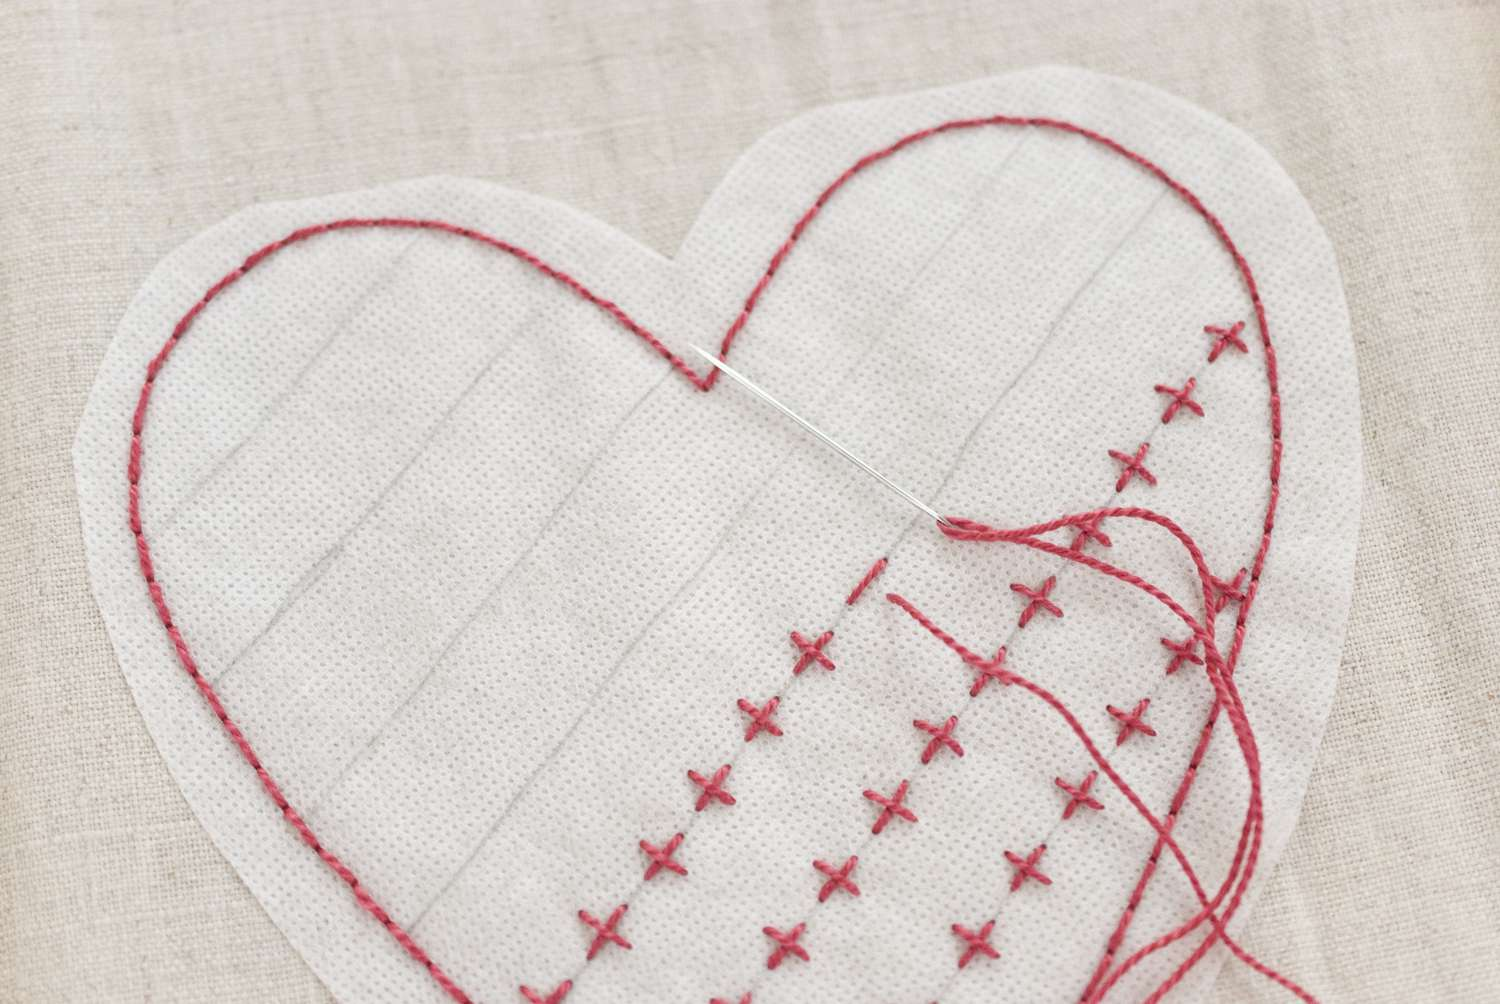 Embroider the Hearts